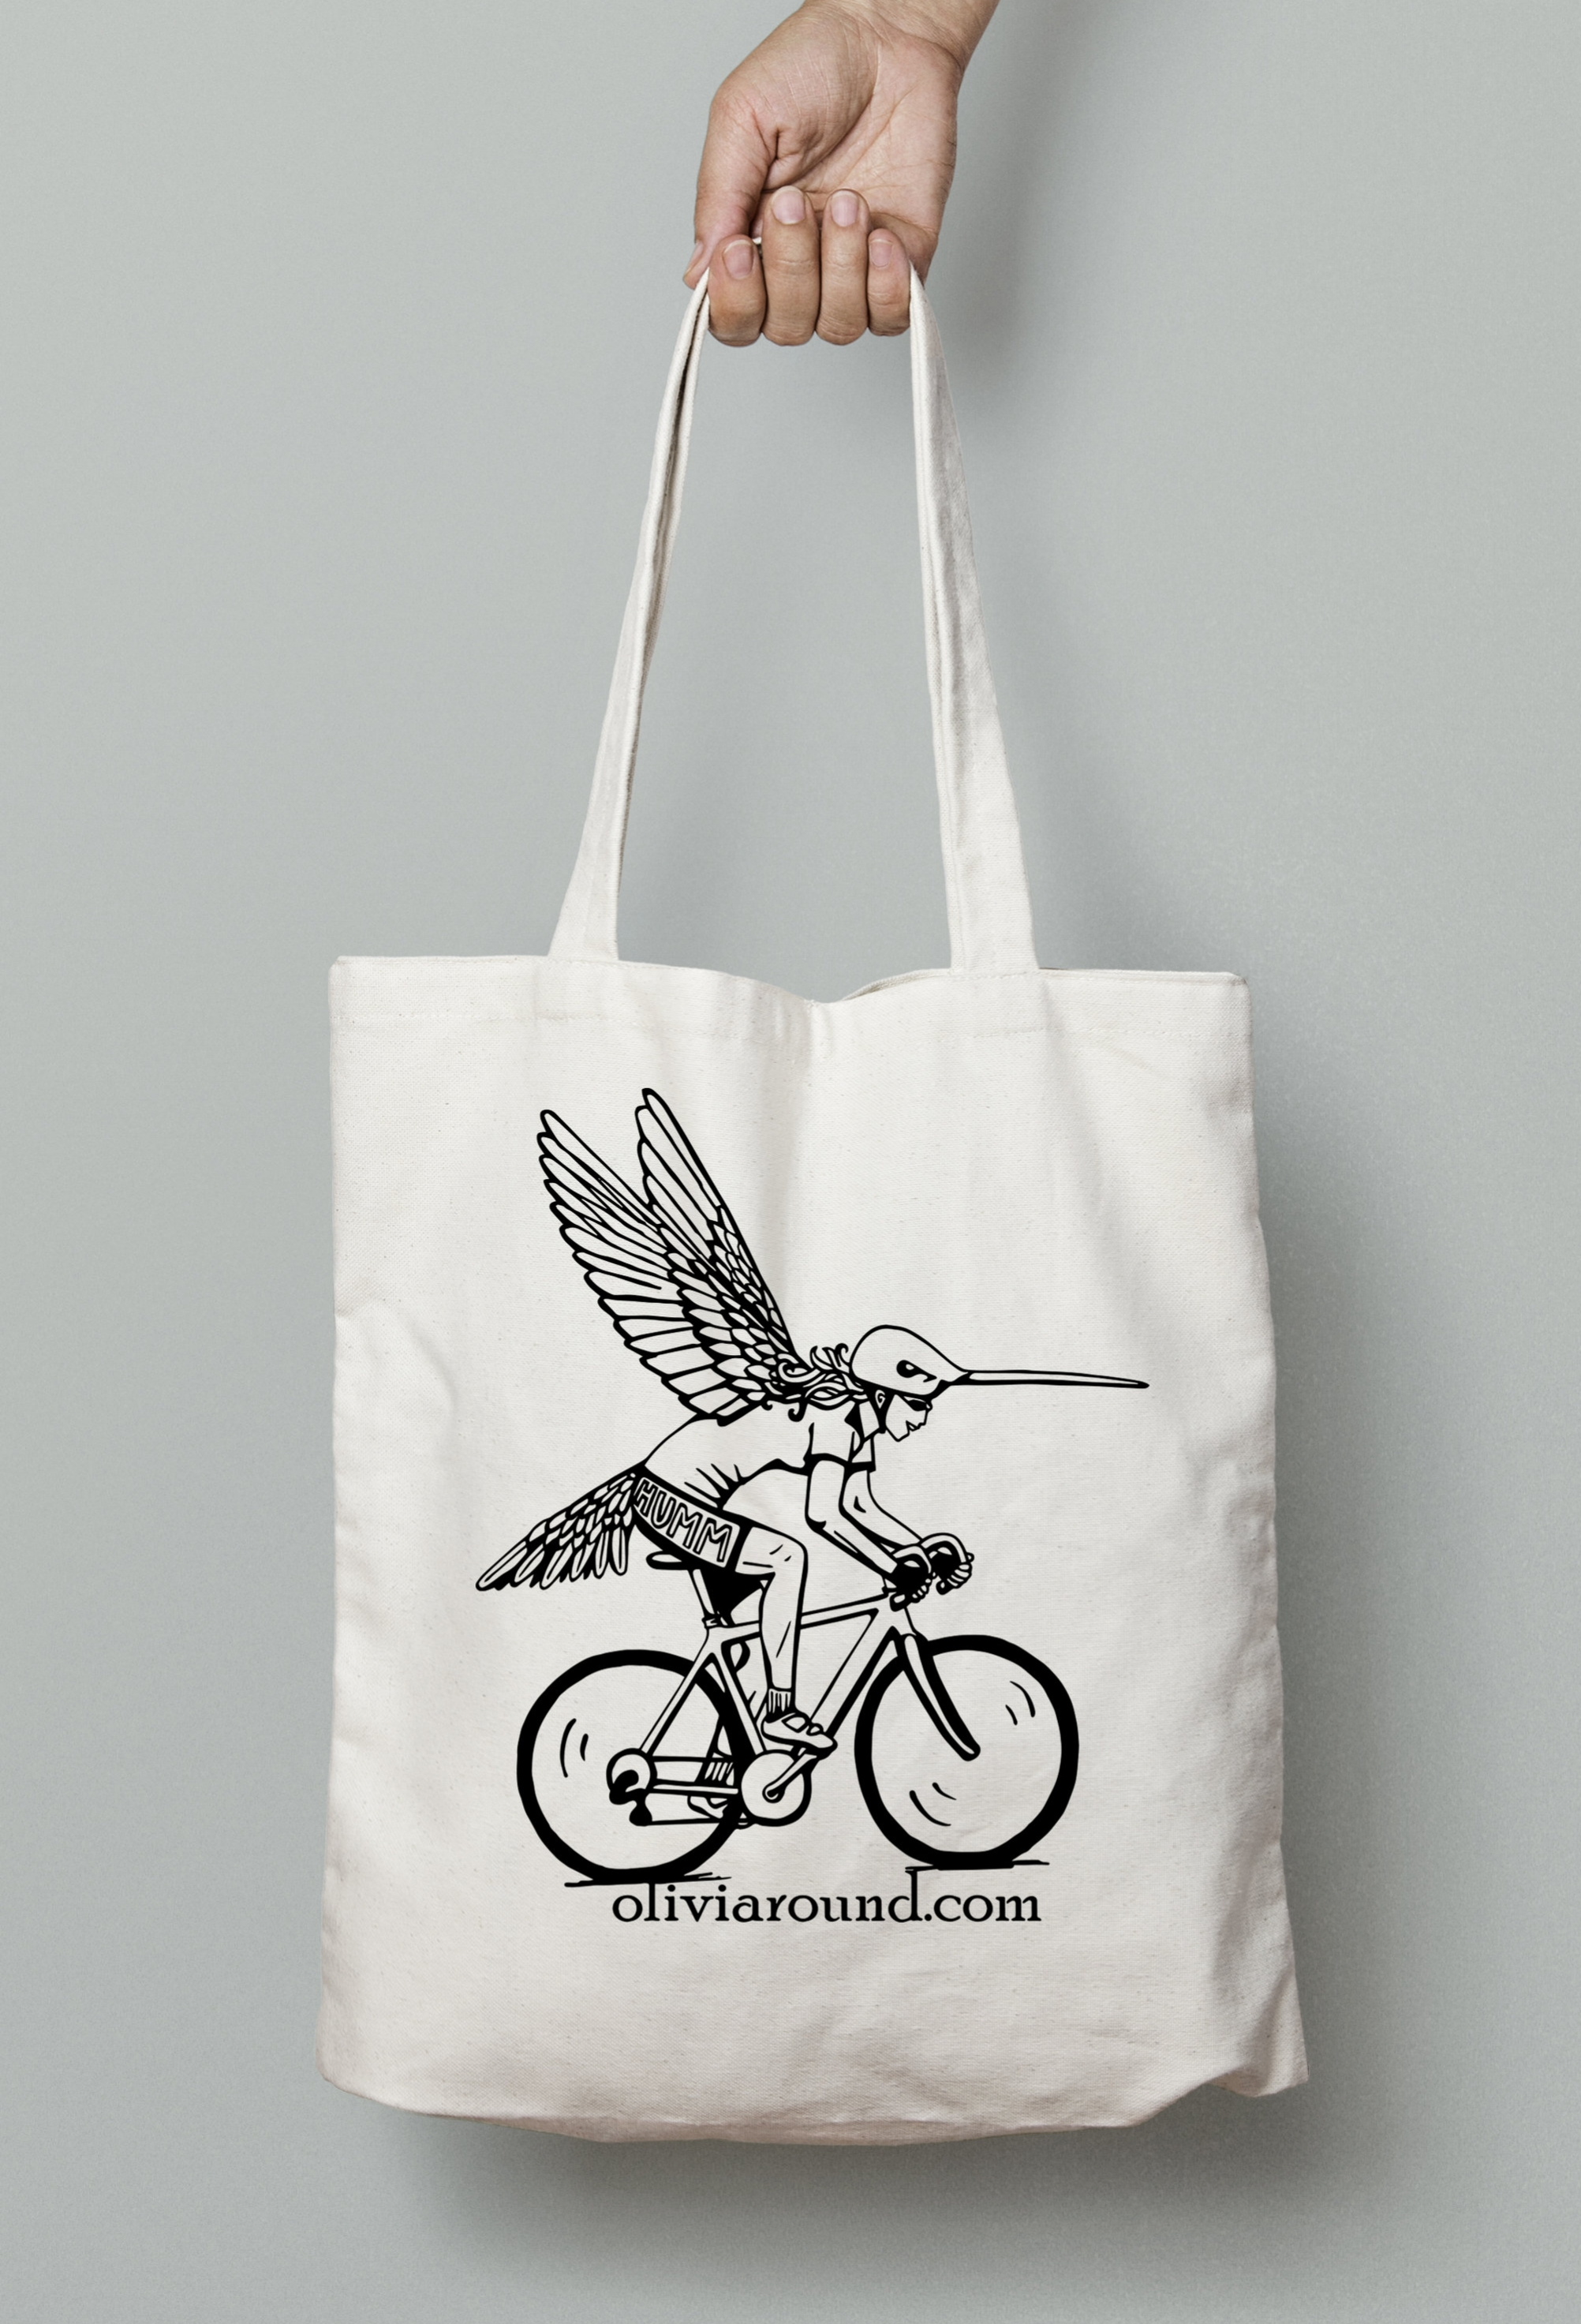 I was inspired to create a small-but-mighty design that embodies freedom, speed, and adventure... -